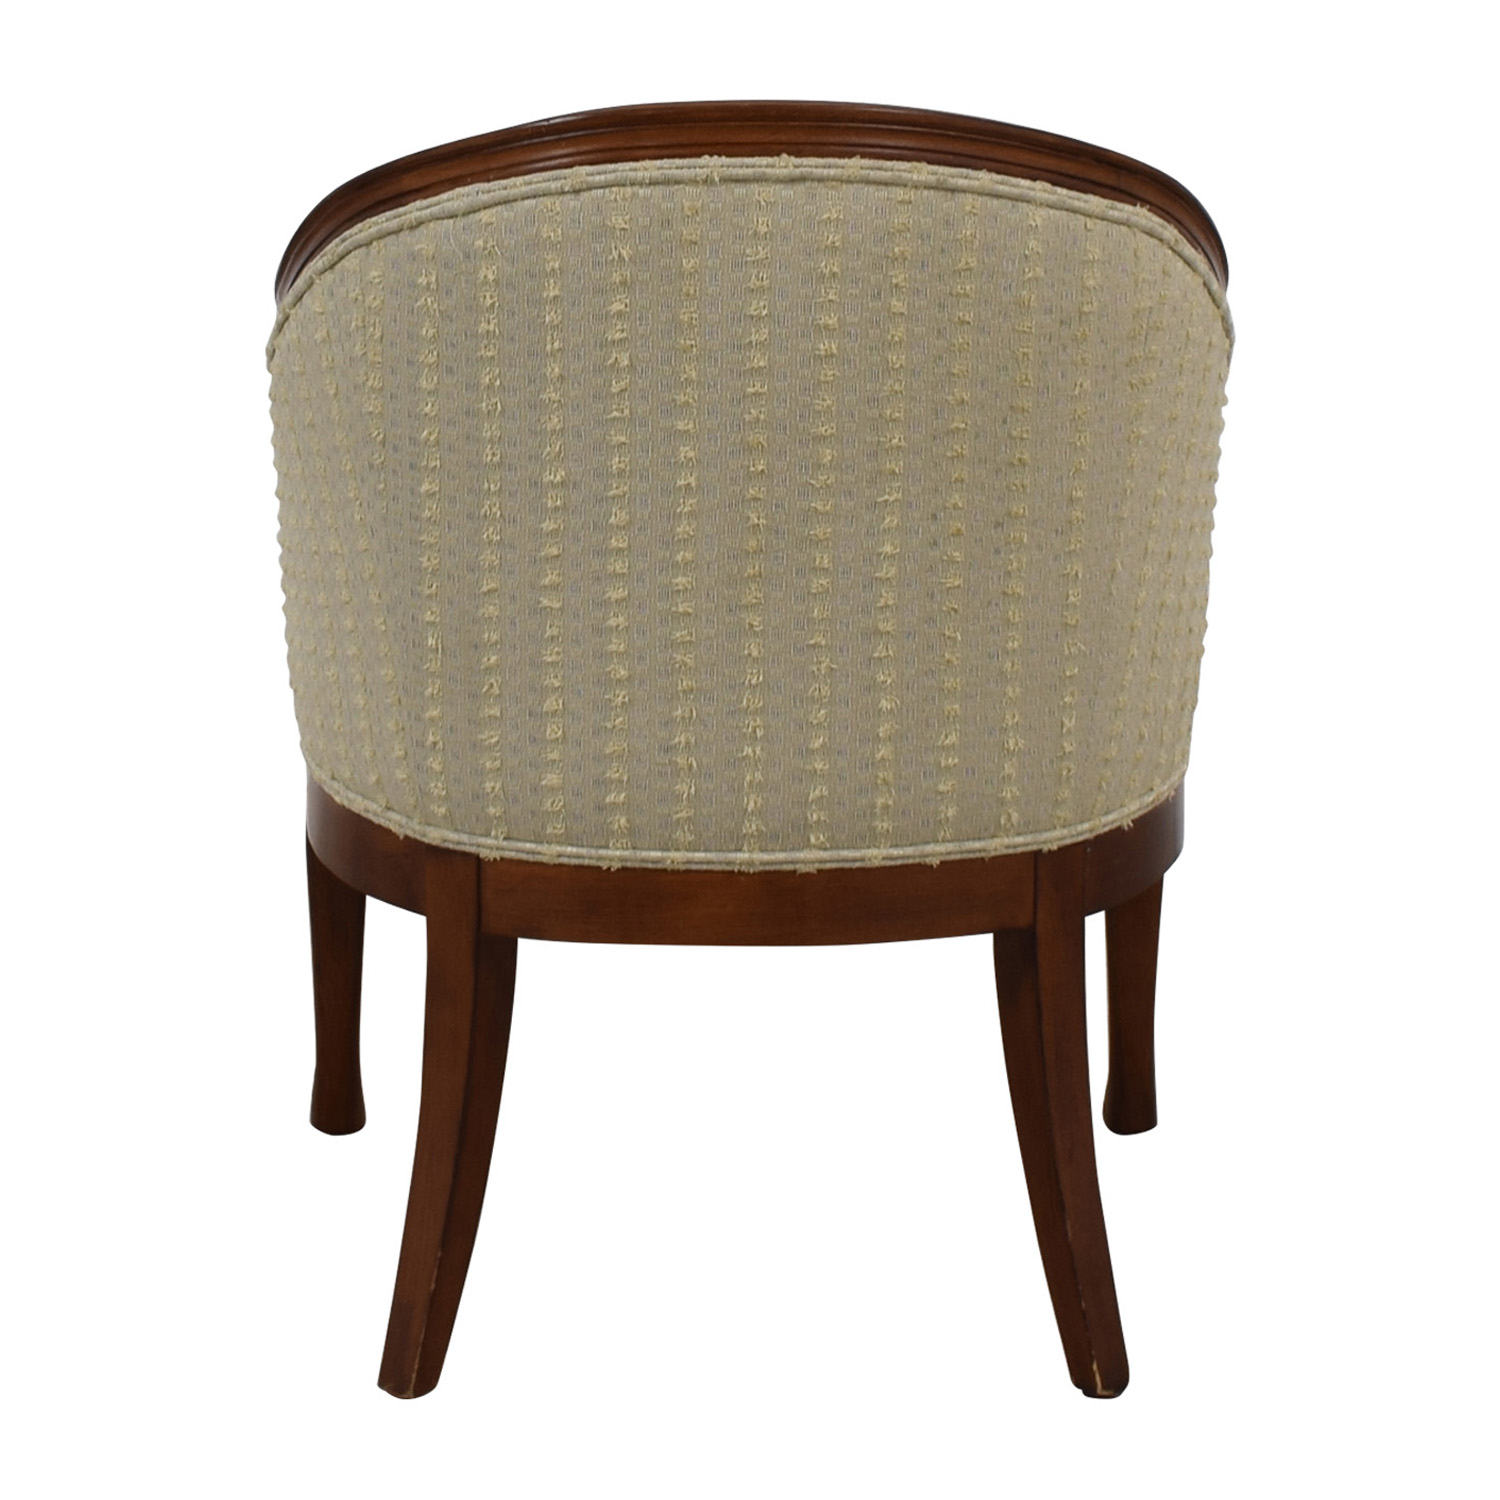 Custom Beige Upholstered Semi Round Accent Chair